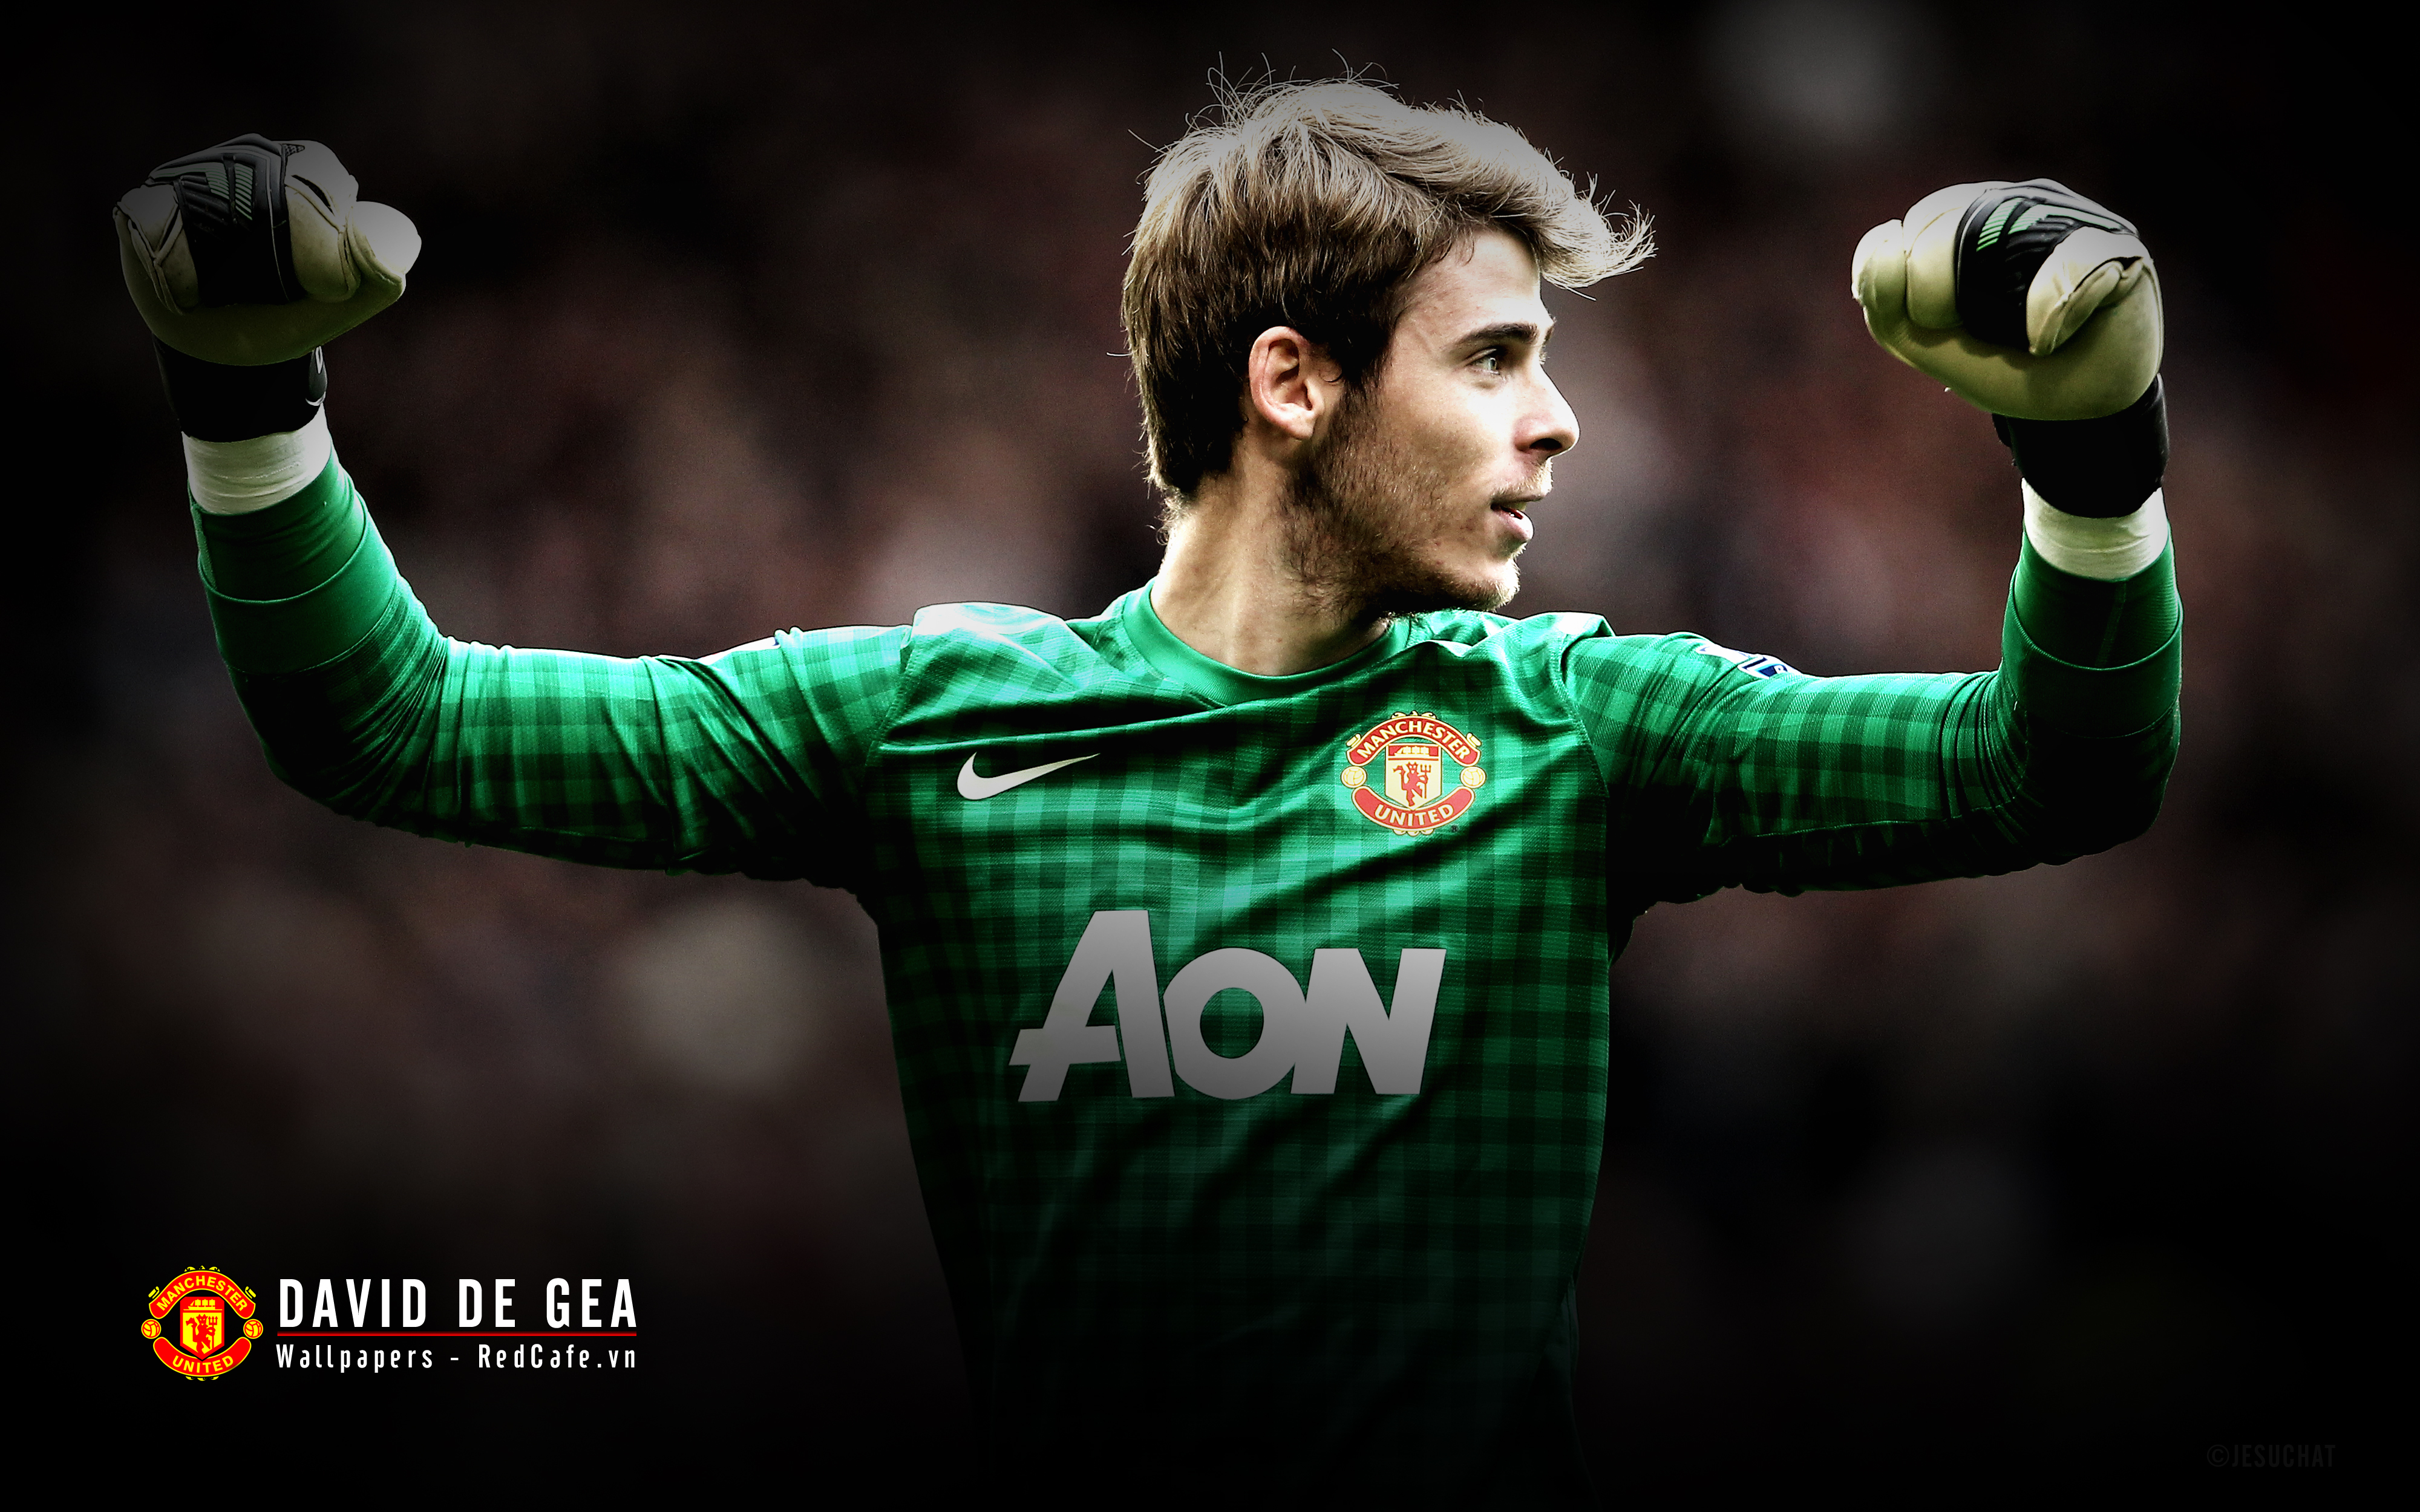 The goalkeeper of Manchester United David De Gea wallpapers and 4000x2500